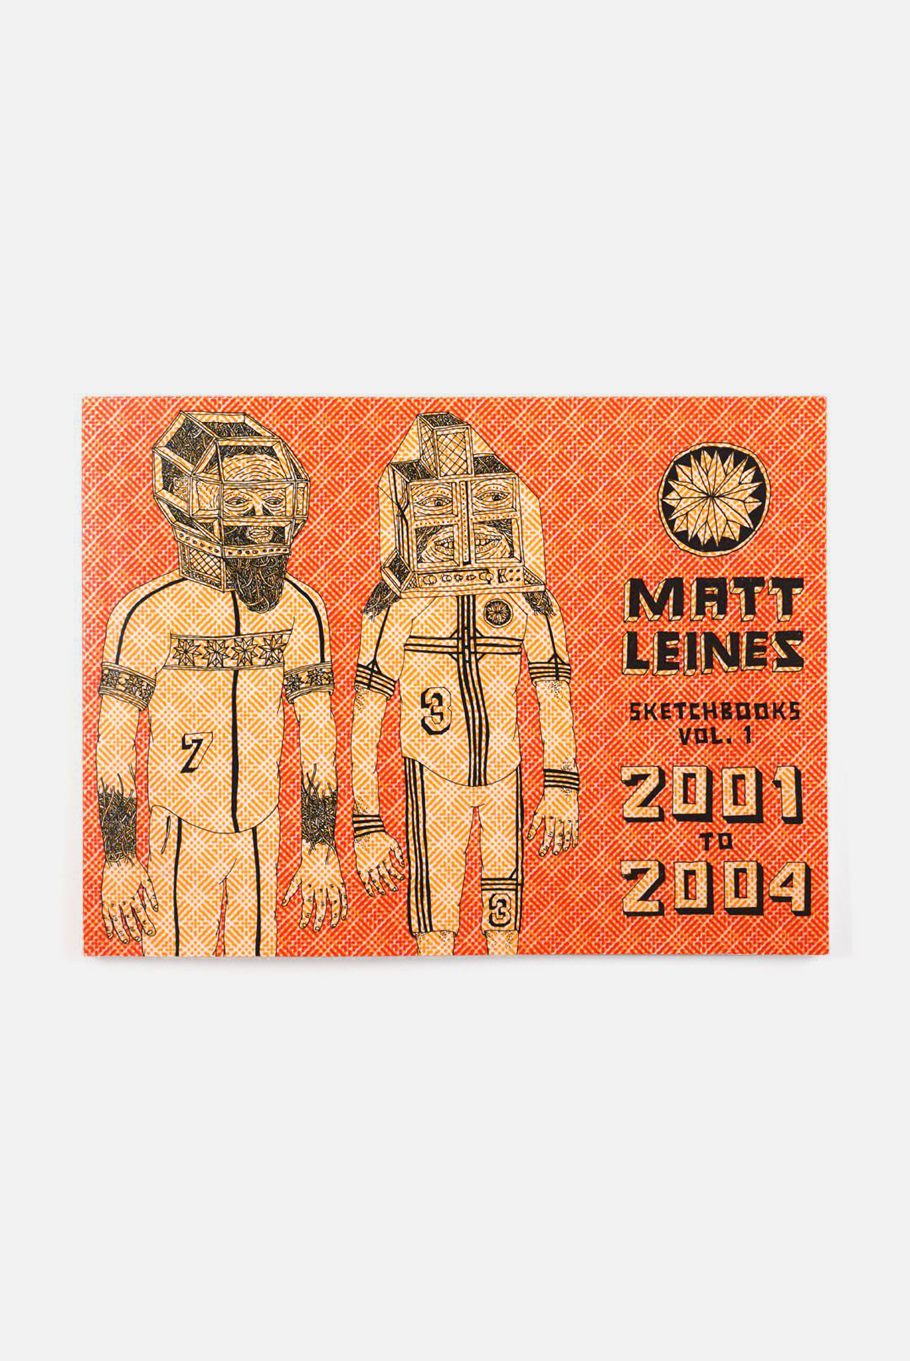 Sketchbooks Vol. 1 2001-2004 by Matt Leines